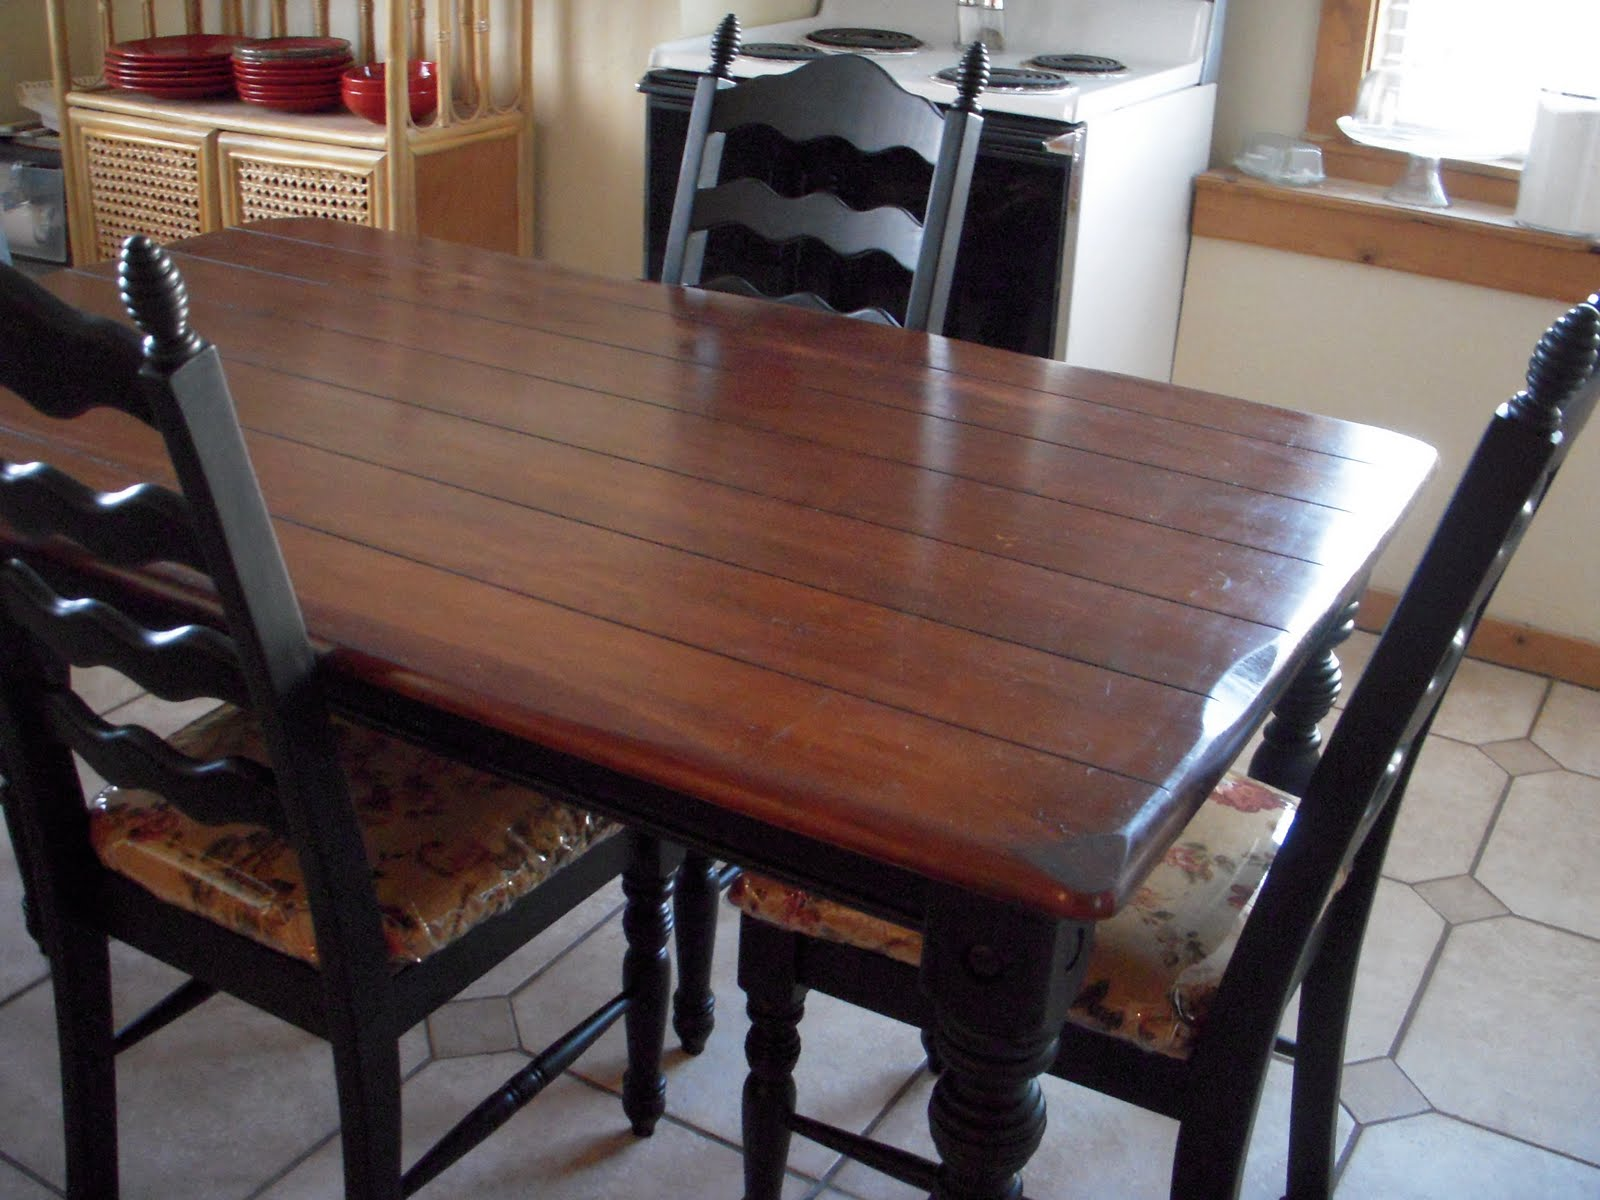 Do it yourself divas diy kitchen table makeover - Refinishing a kitchen table ...